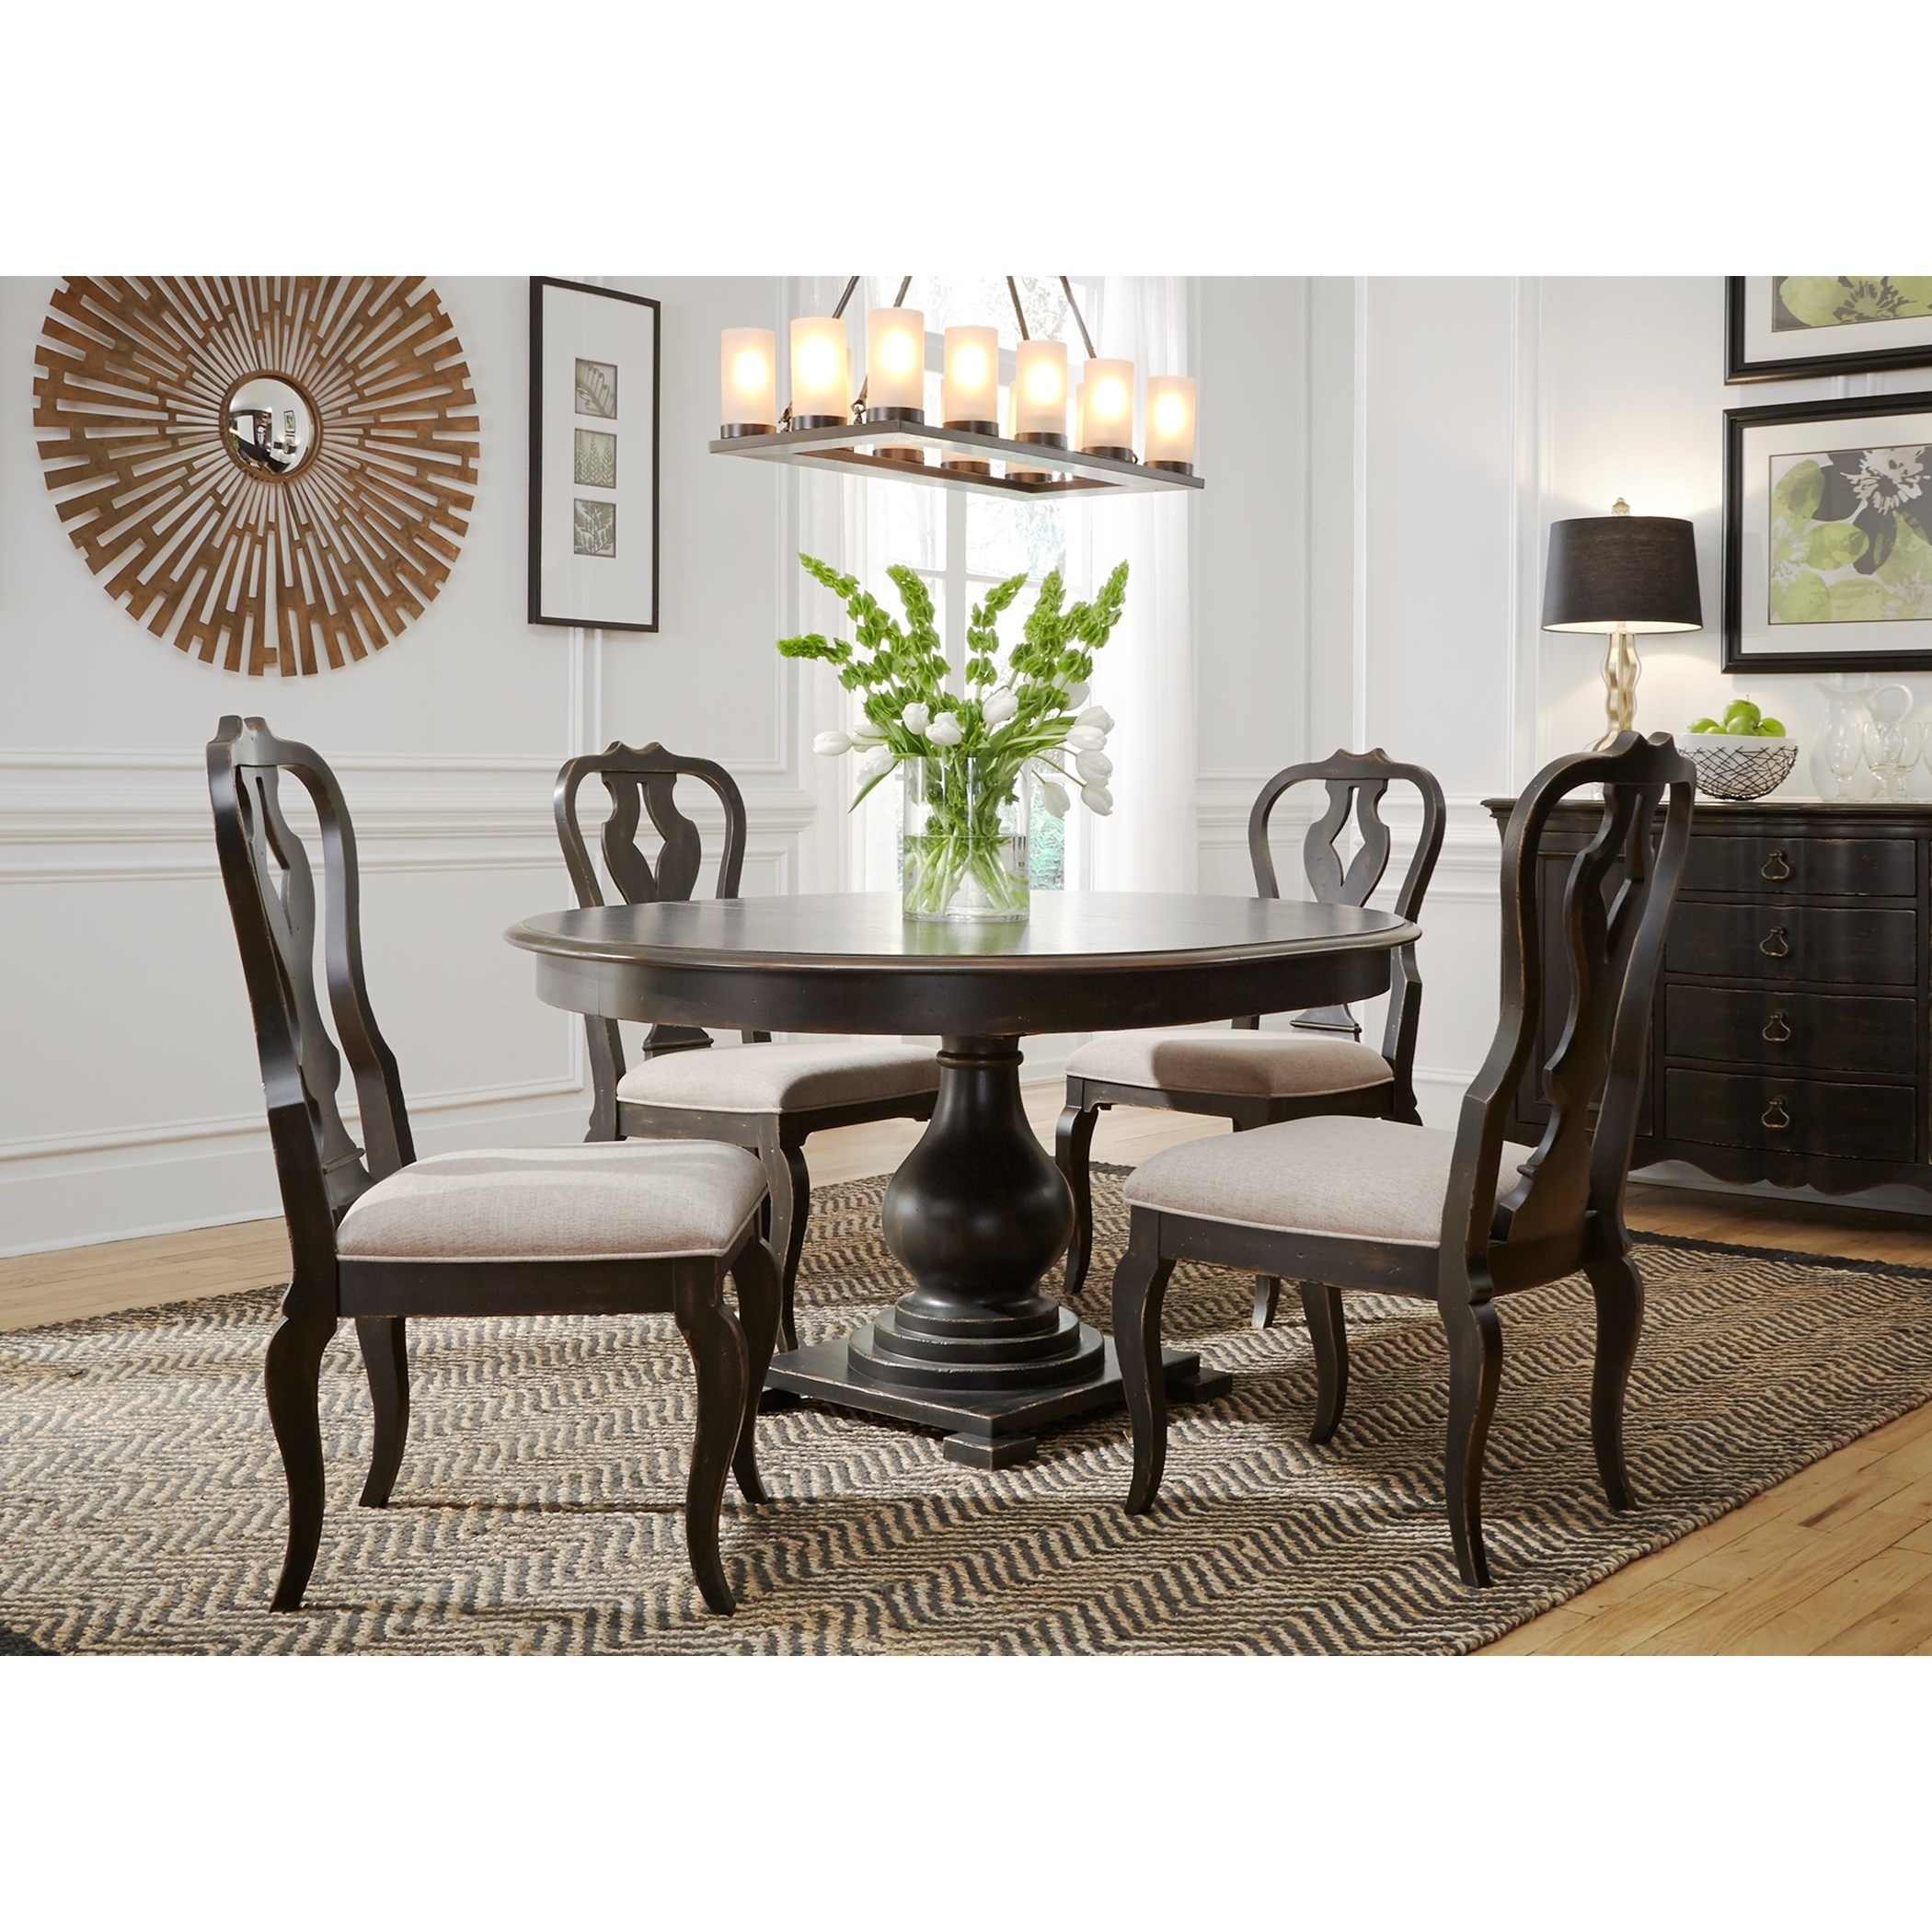 Round Pedestal Table and Chair Set